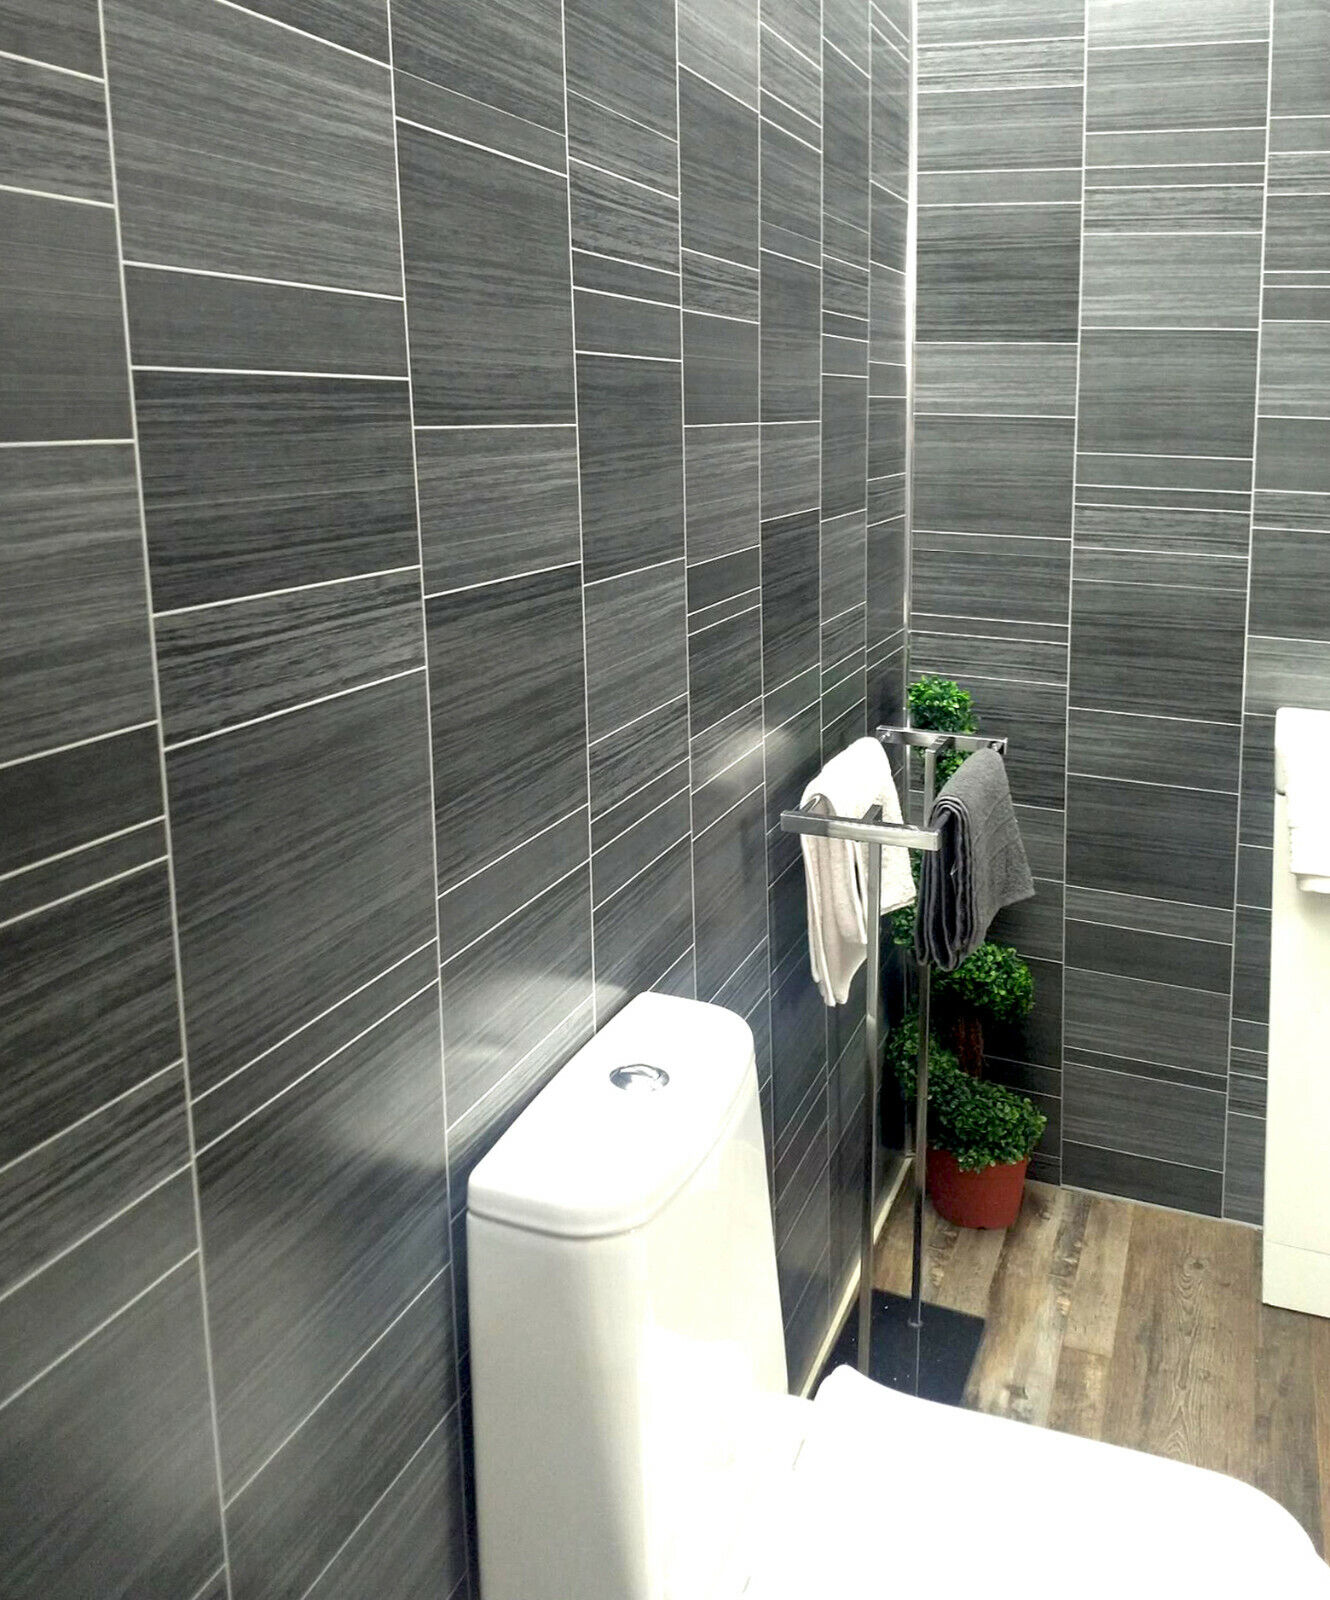 Executive Grey Tile Effect Bathroom Cladding Panels Wet ...